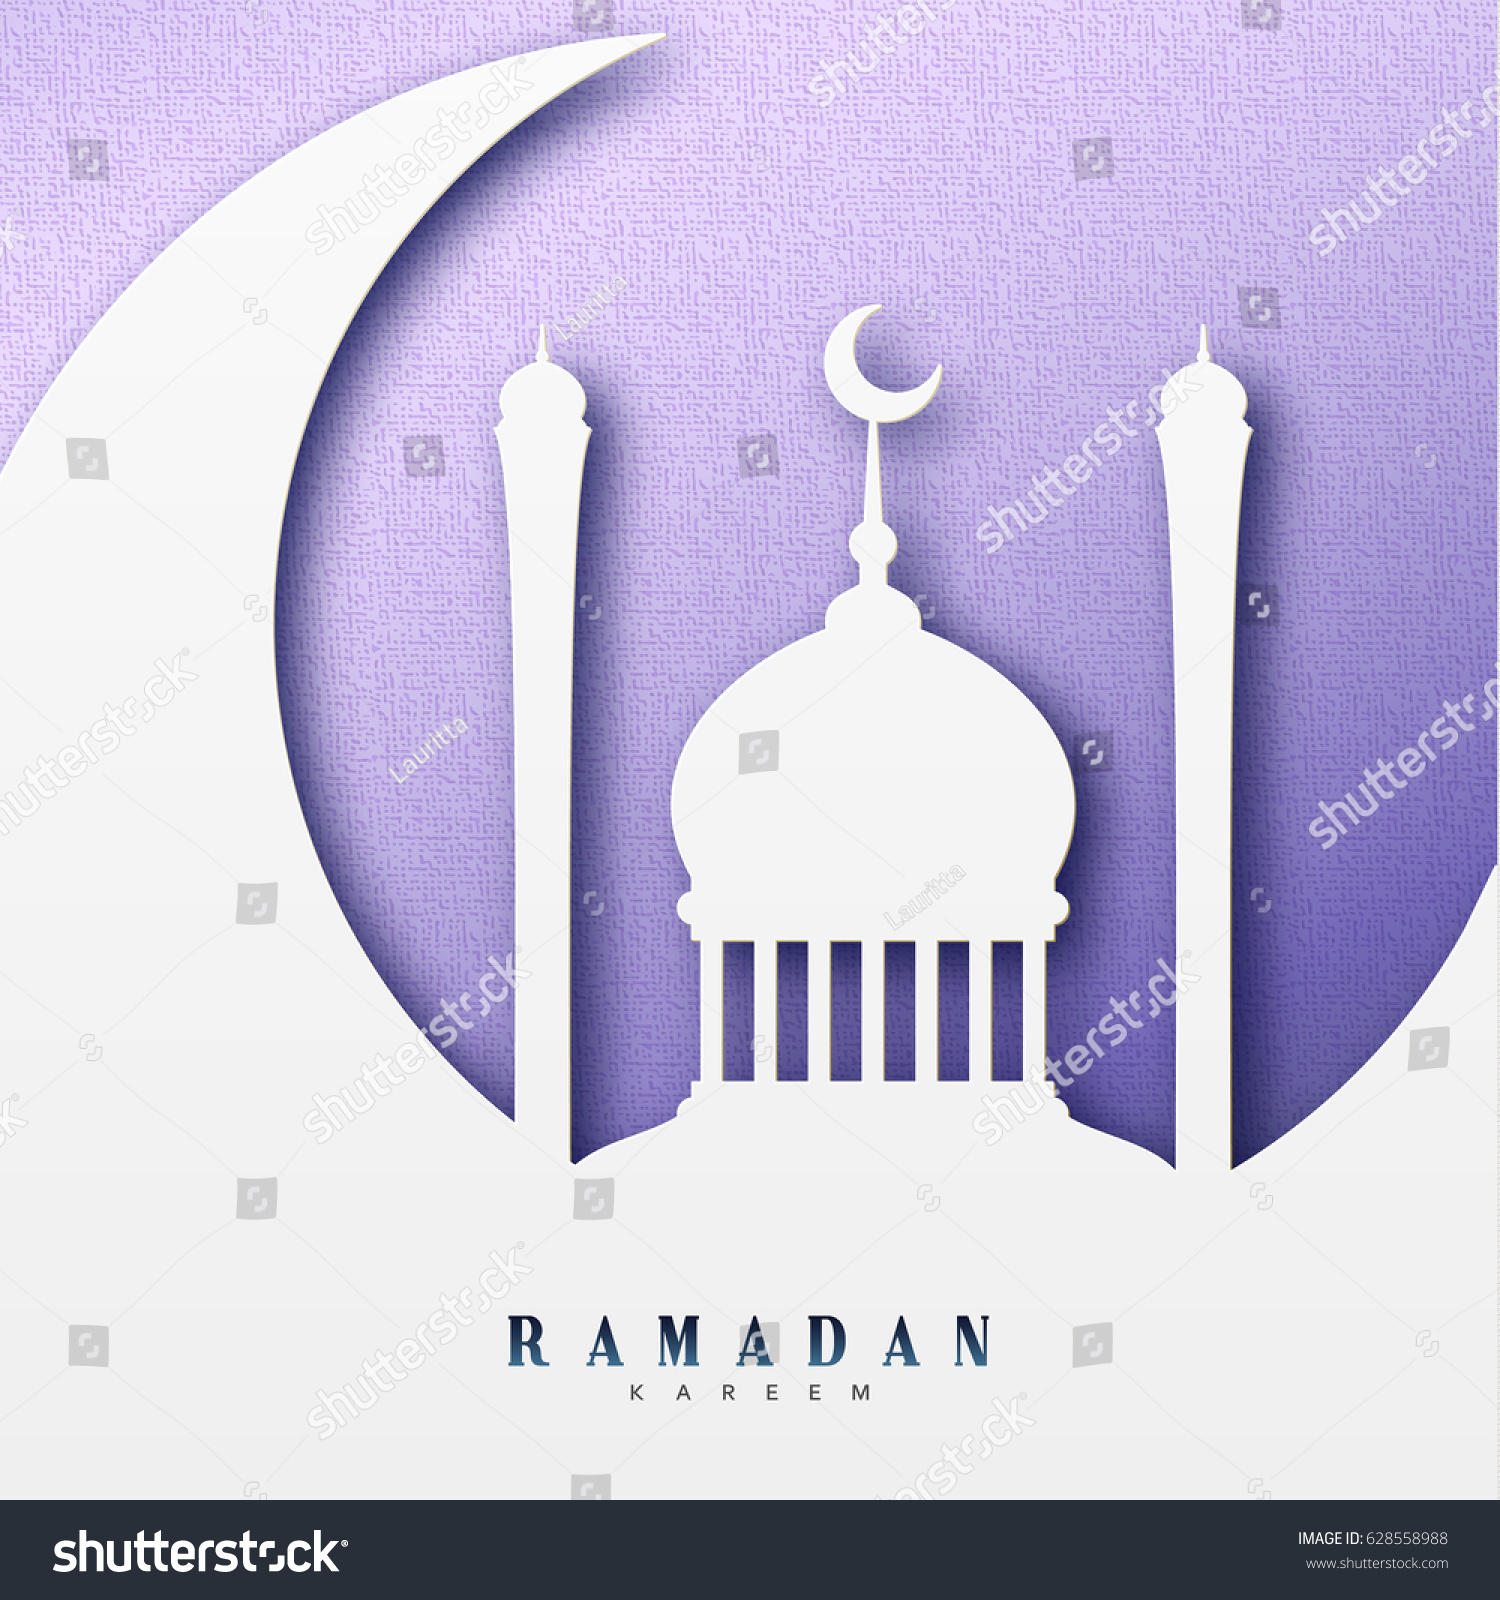 Ramadan greeting card arabic calligraphy ramadan stock vector ramadan greeting card with arabic calligraphy ramadan kareem islamic background half a month with mosques kristyandbryce Image collections